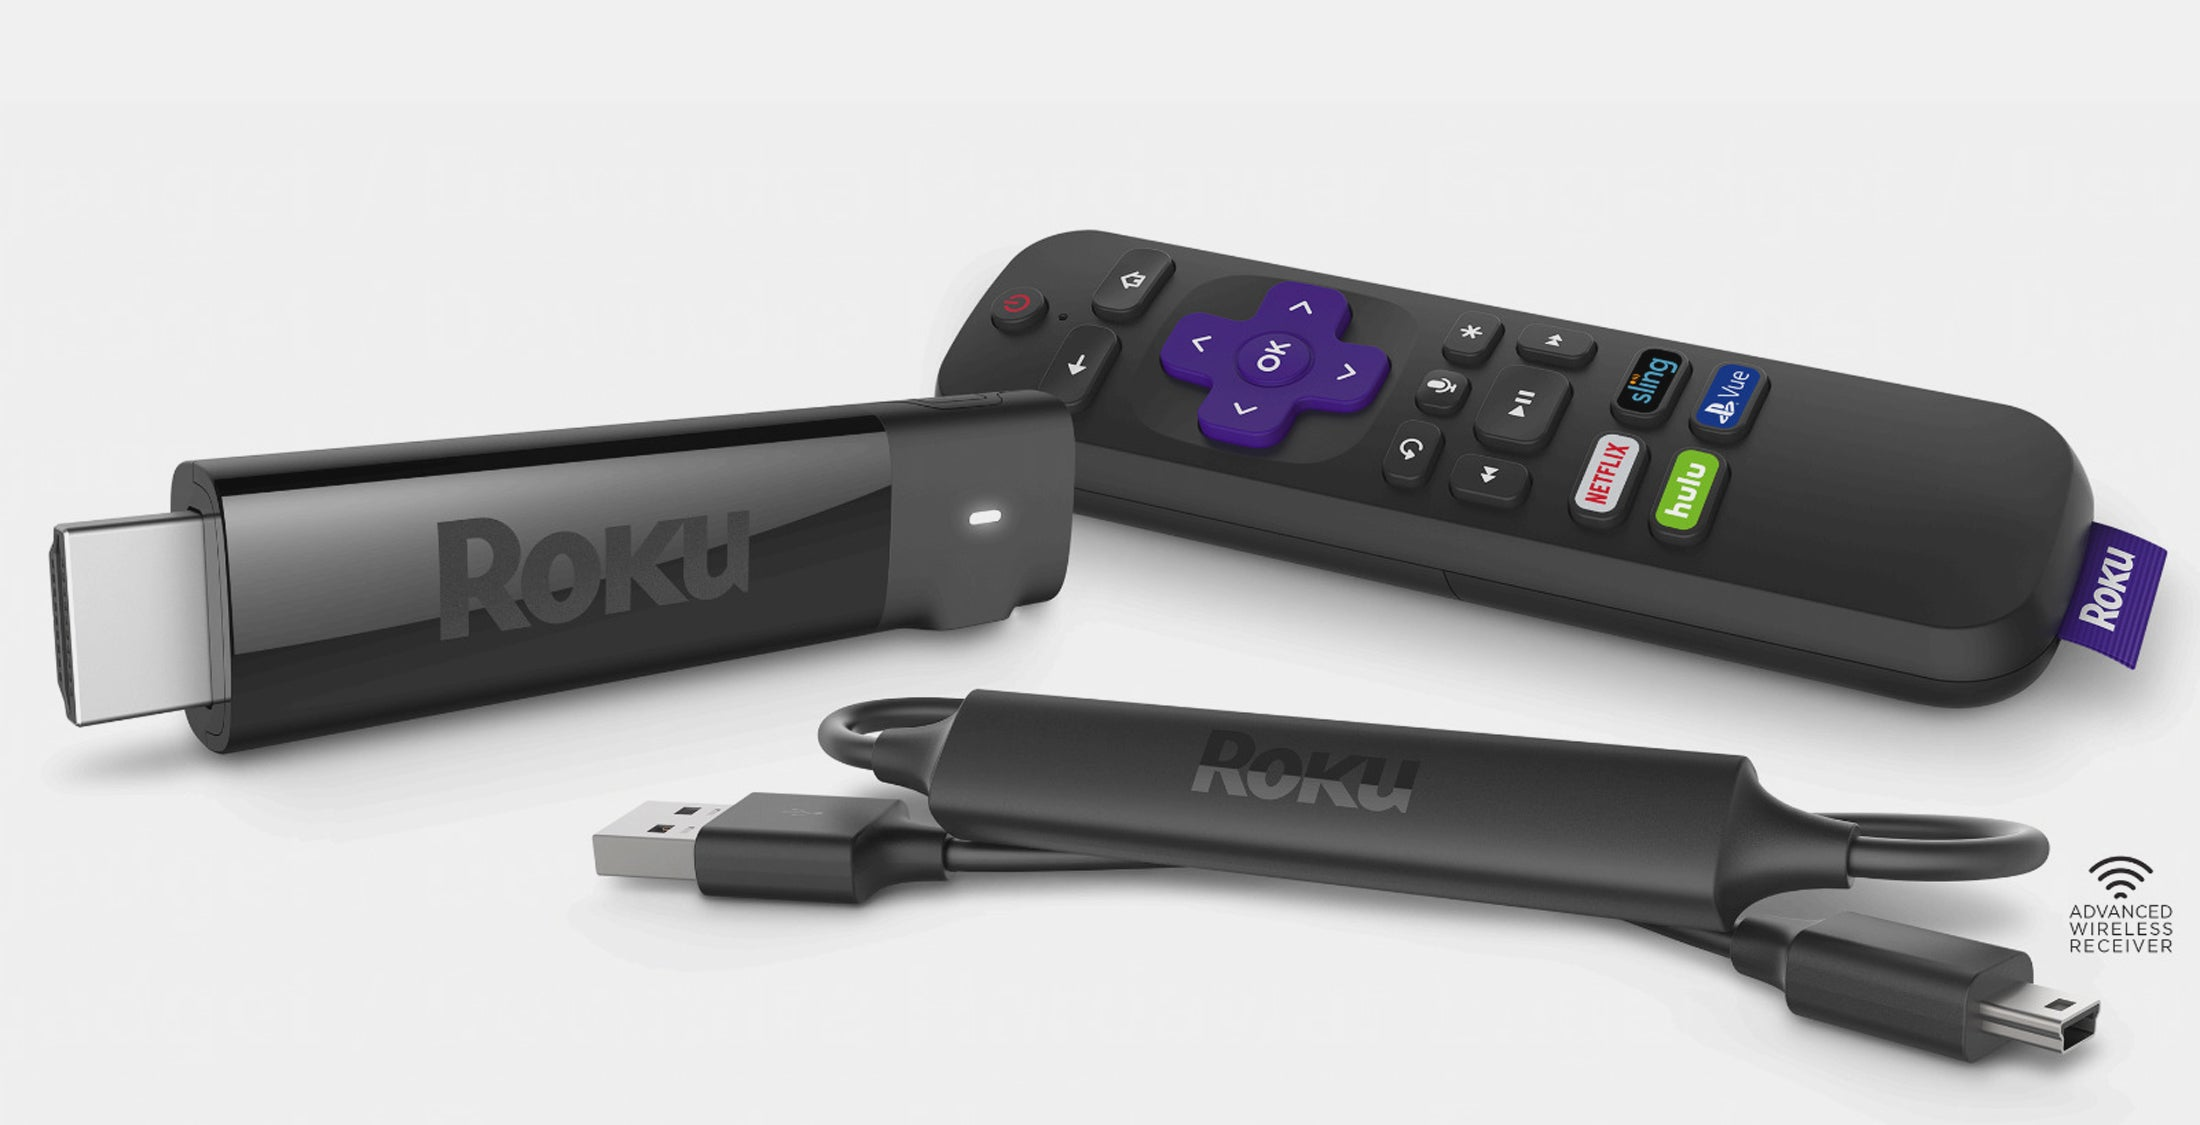 Roku S Latest 4k Streaming Stick Has Been Price Slashed By